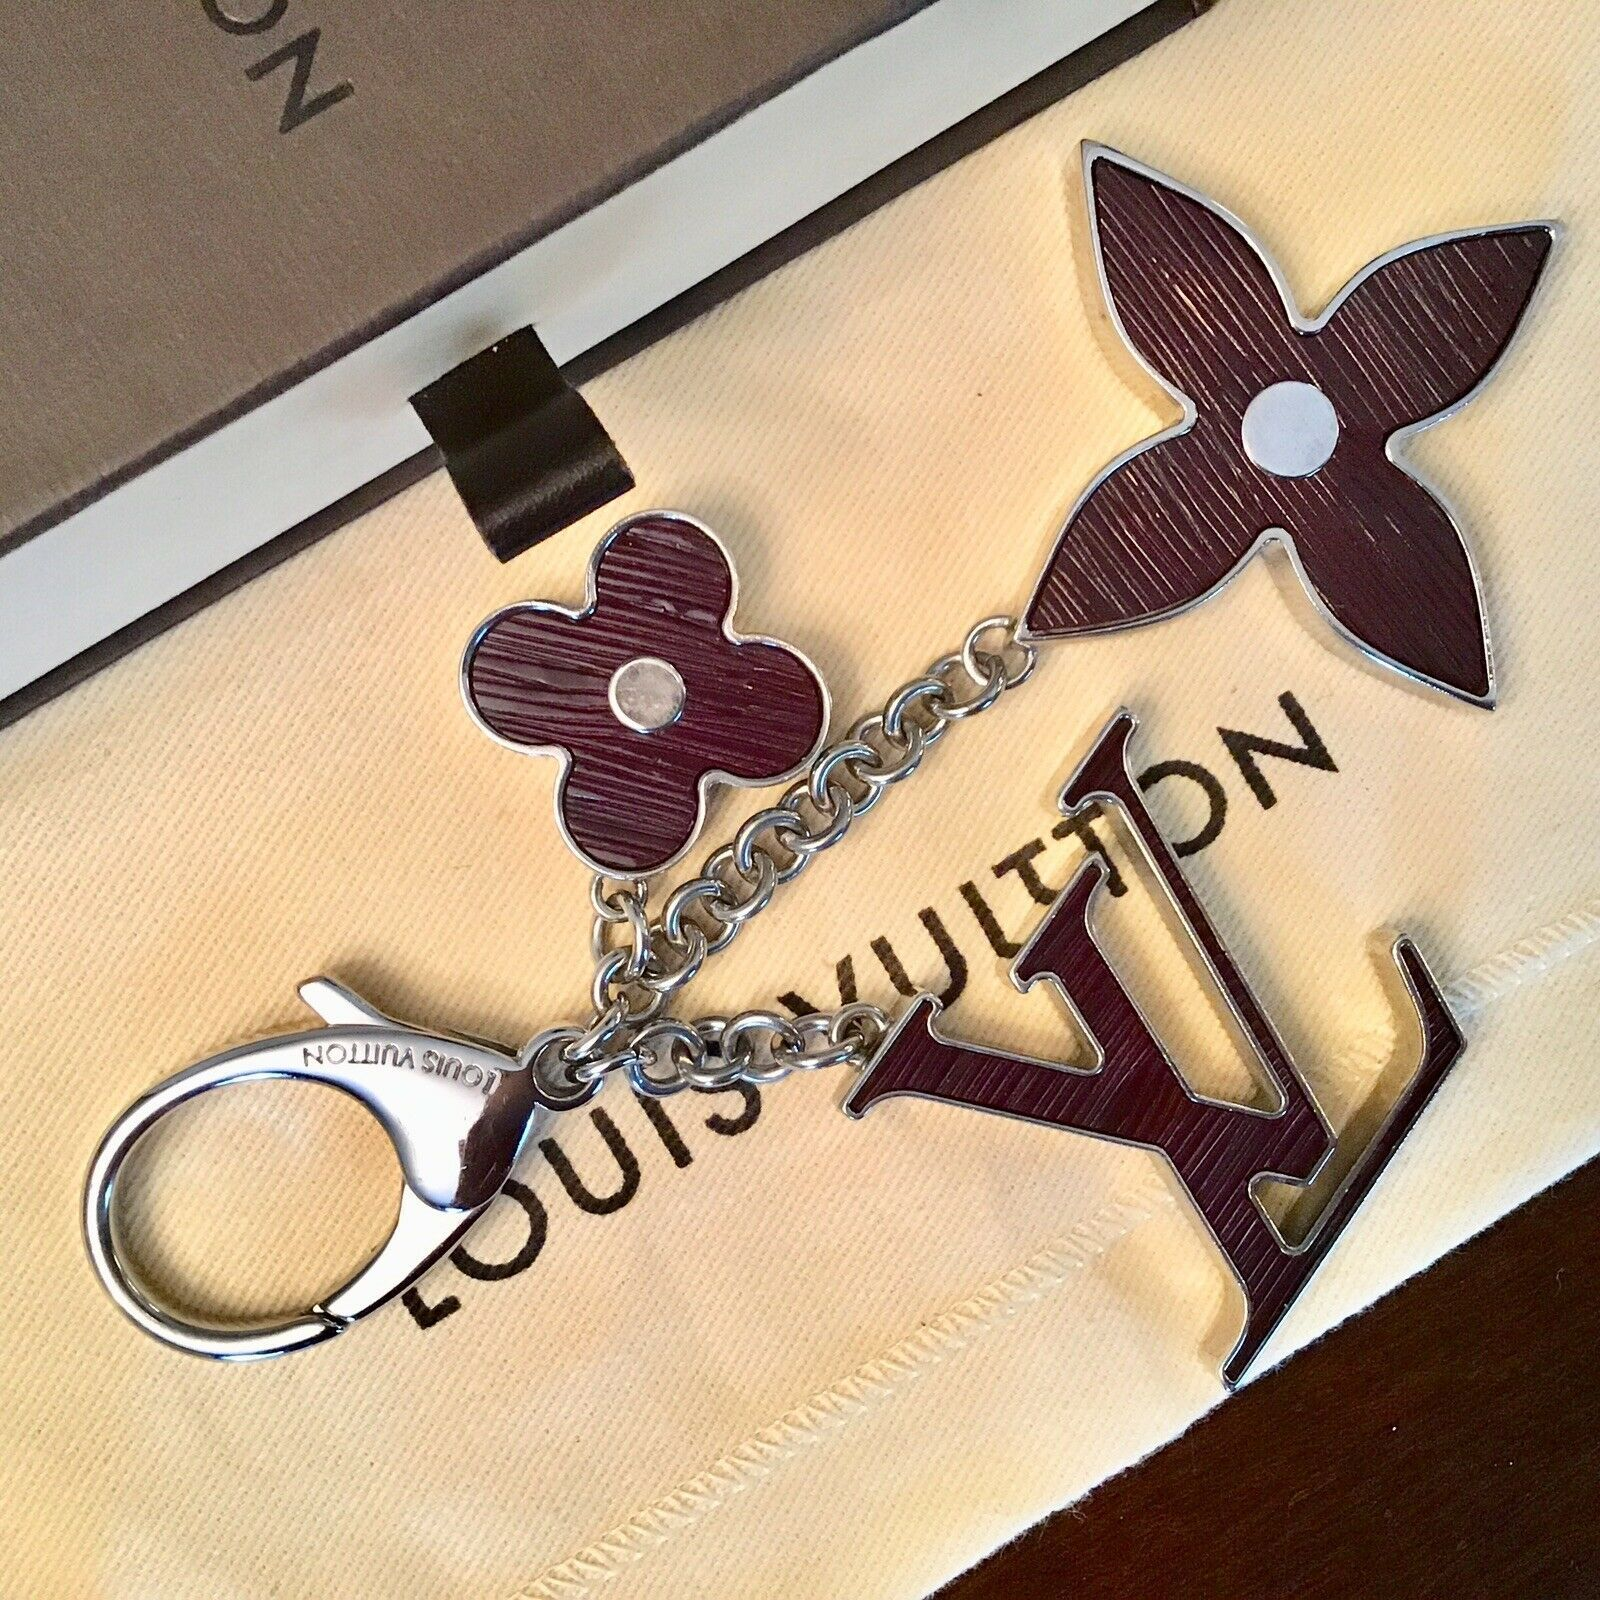 Louis Vuitton Bijoux Sac FLEUR D'EPI Key/ Bag Charm-Gently Used With Date Code image 4